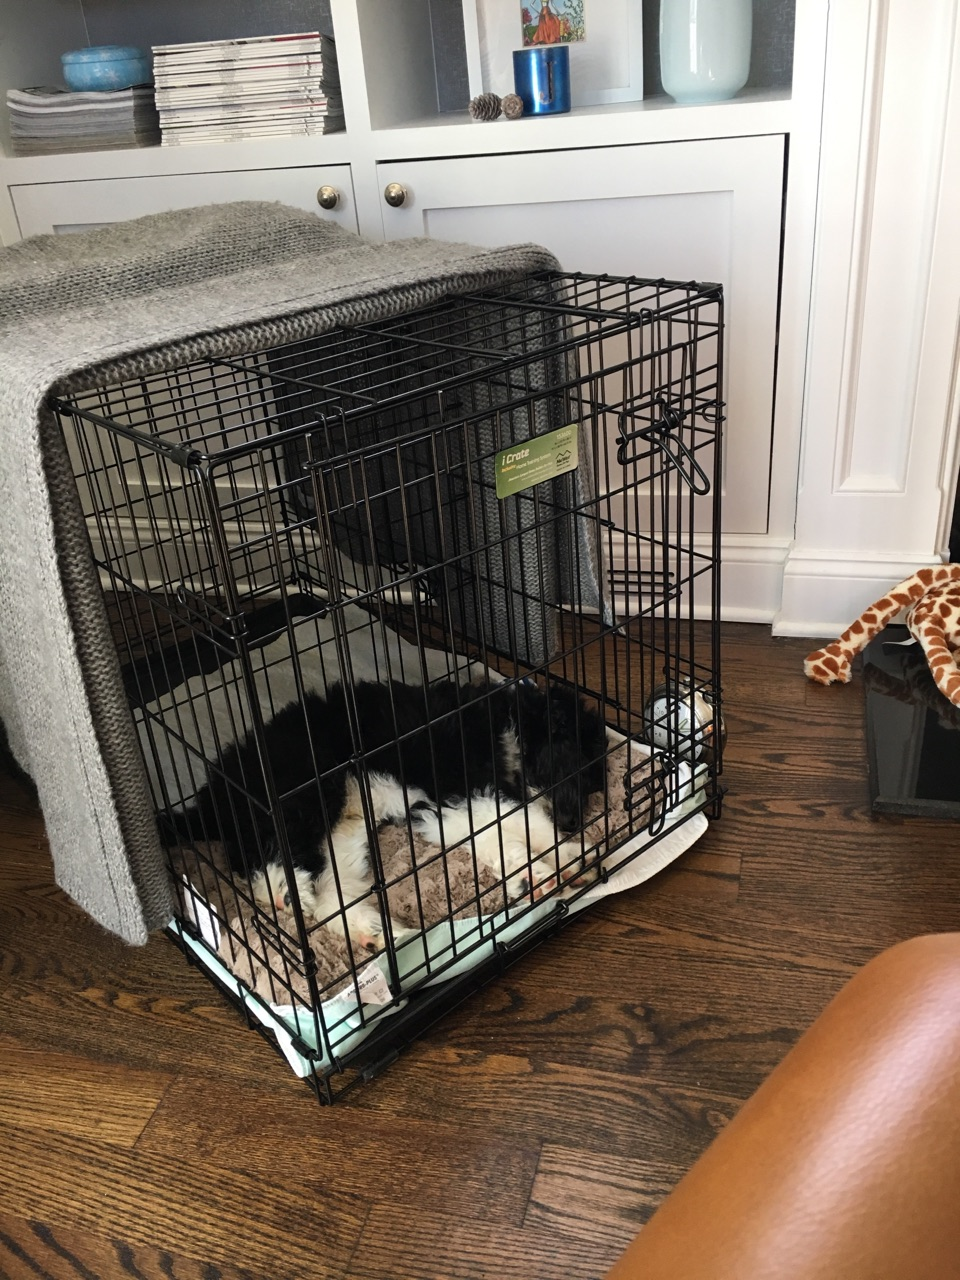 How To Potty Train Your Puppy In 7 Days Two Crate Training Schedules Mini Aussiedoodles And Australian Labradoodle Puppies Best Aussiedoodle Breeders In Washington State Portland Oregon